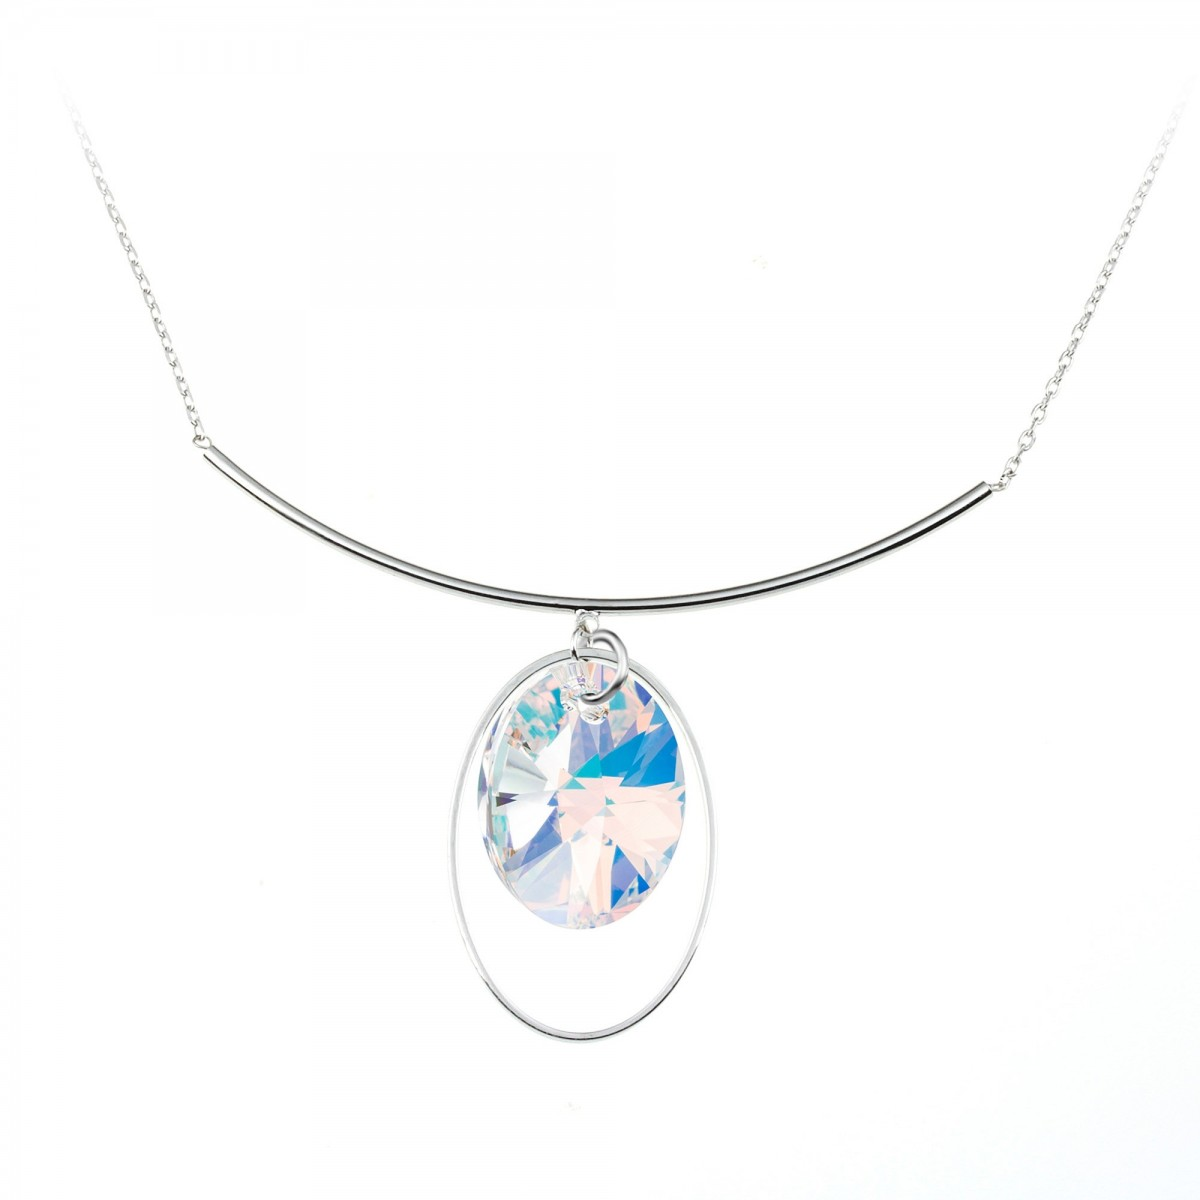 BS049-B1213-IRIS Collier argenté So Charm made with crystals from Swarovski irisé